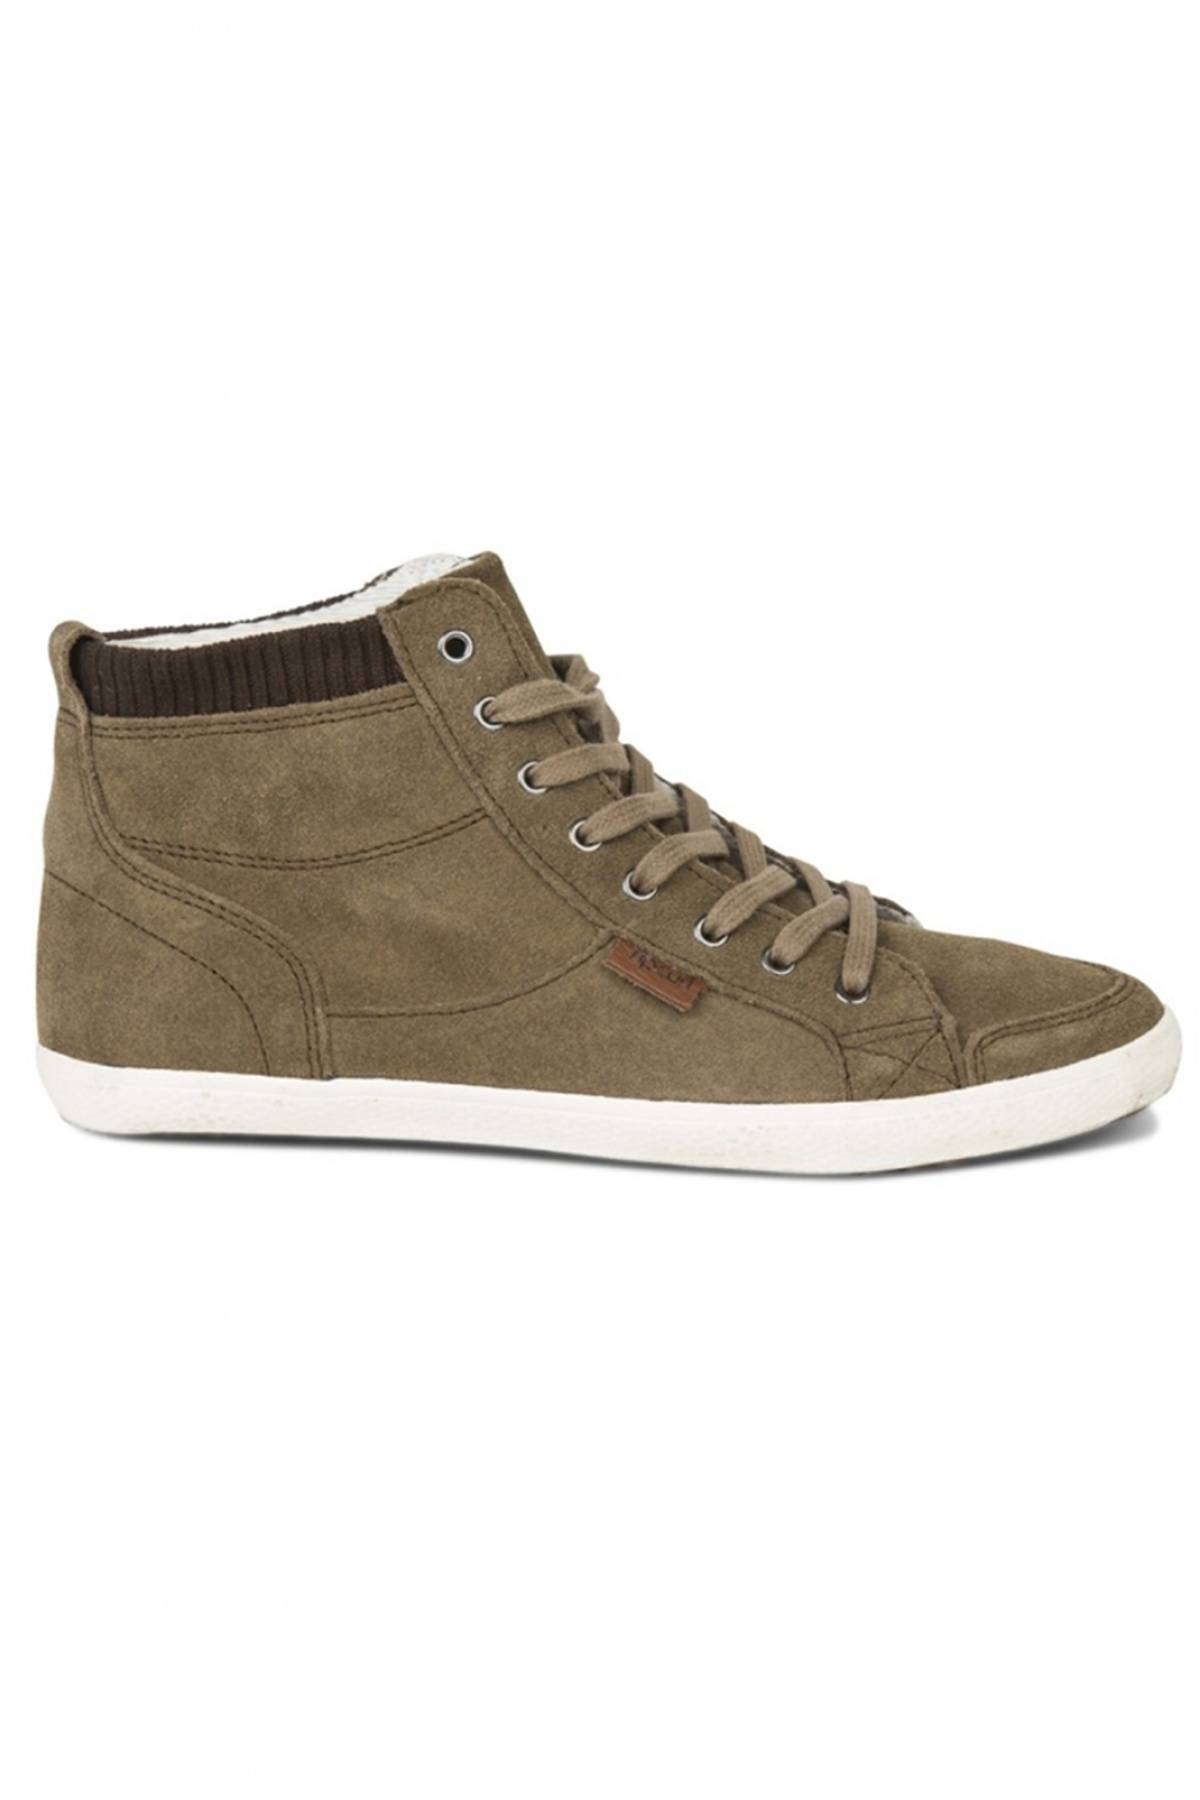 RIP CURL Chaussures RIP CURL FEMME 36 BETSY HIGH TGLAL1 5067